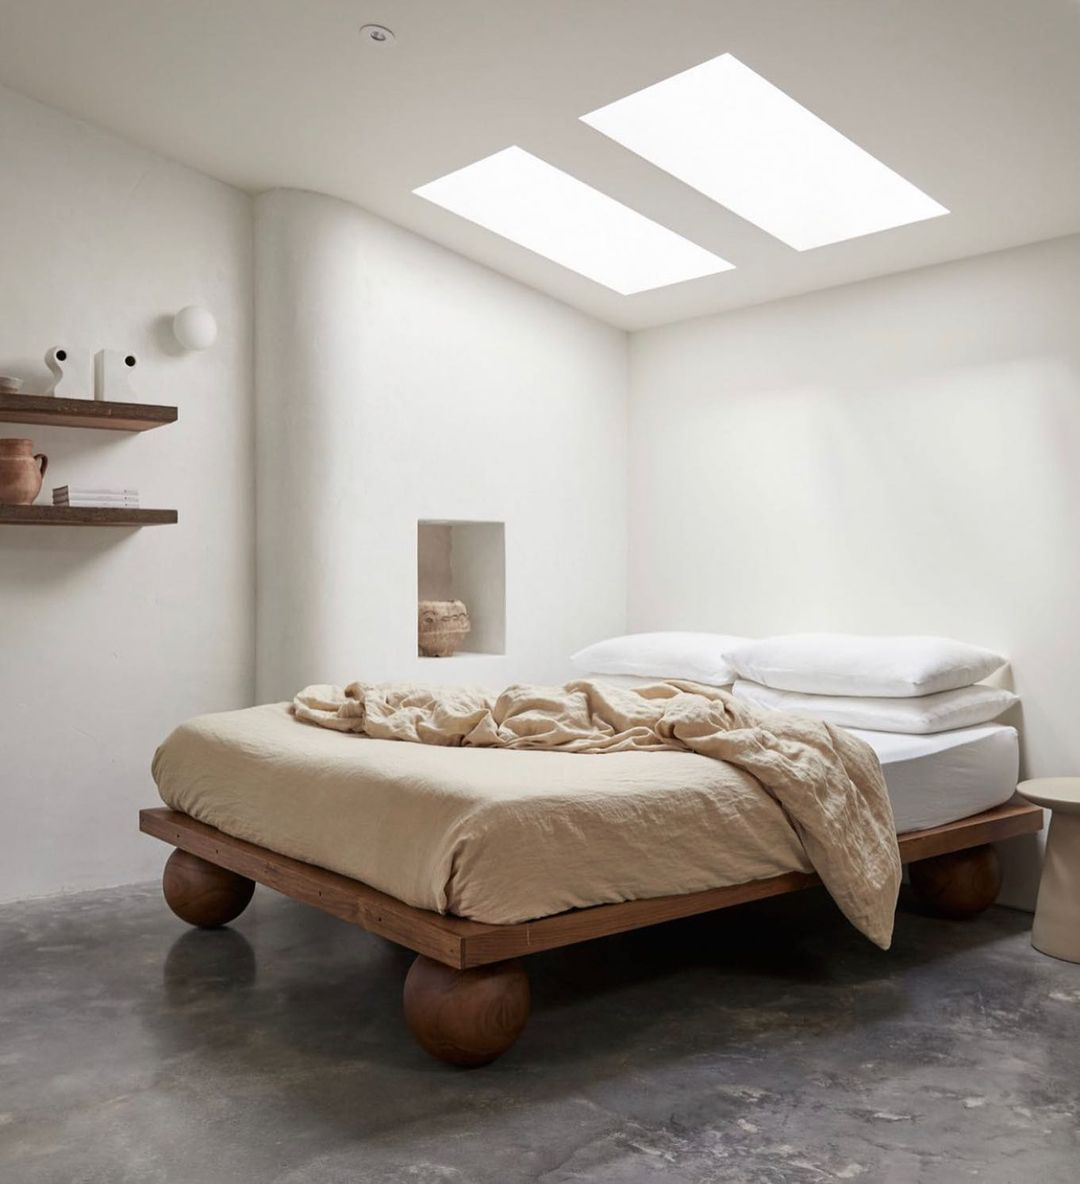 Bed with neutral linens.